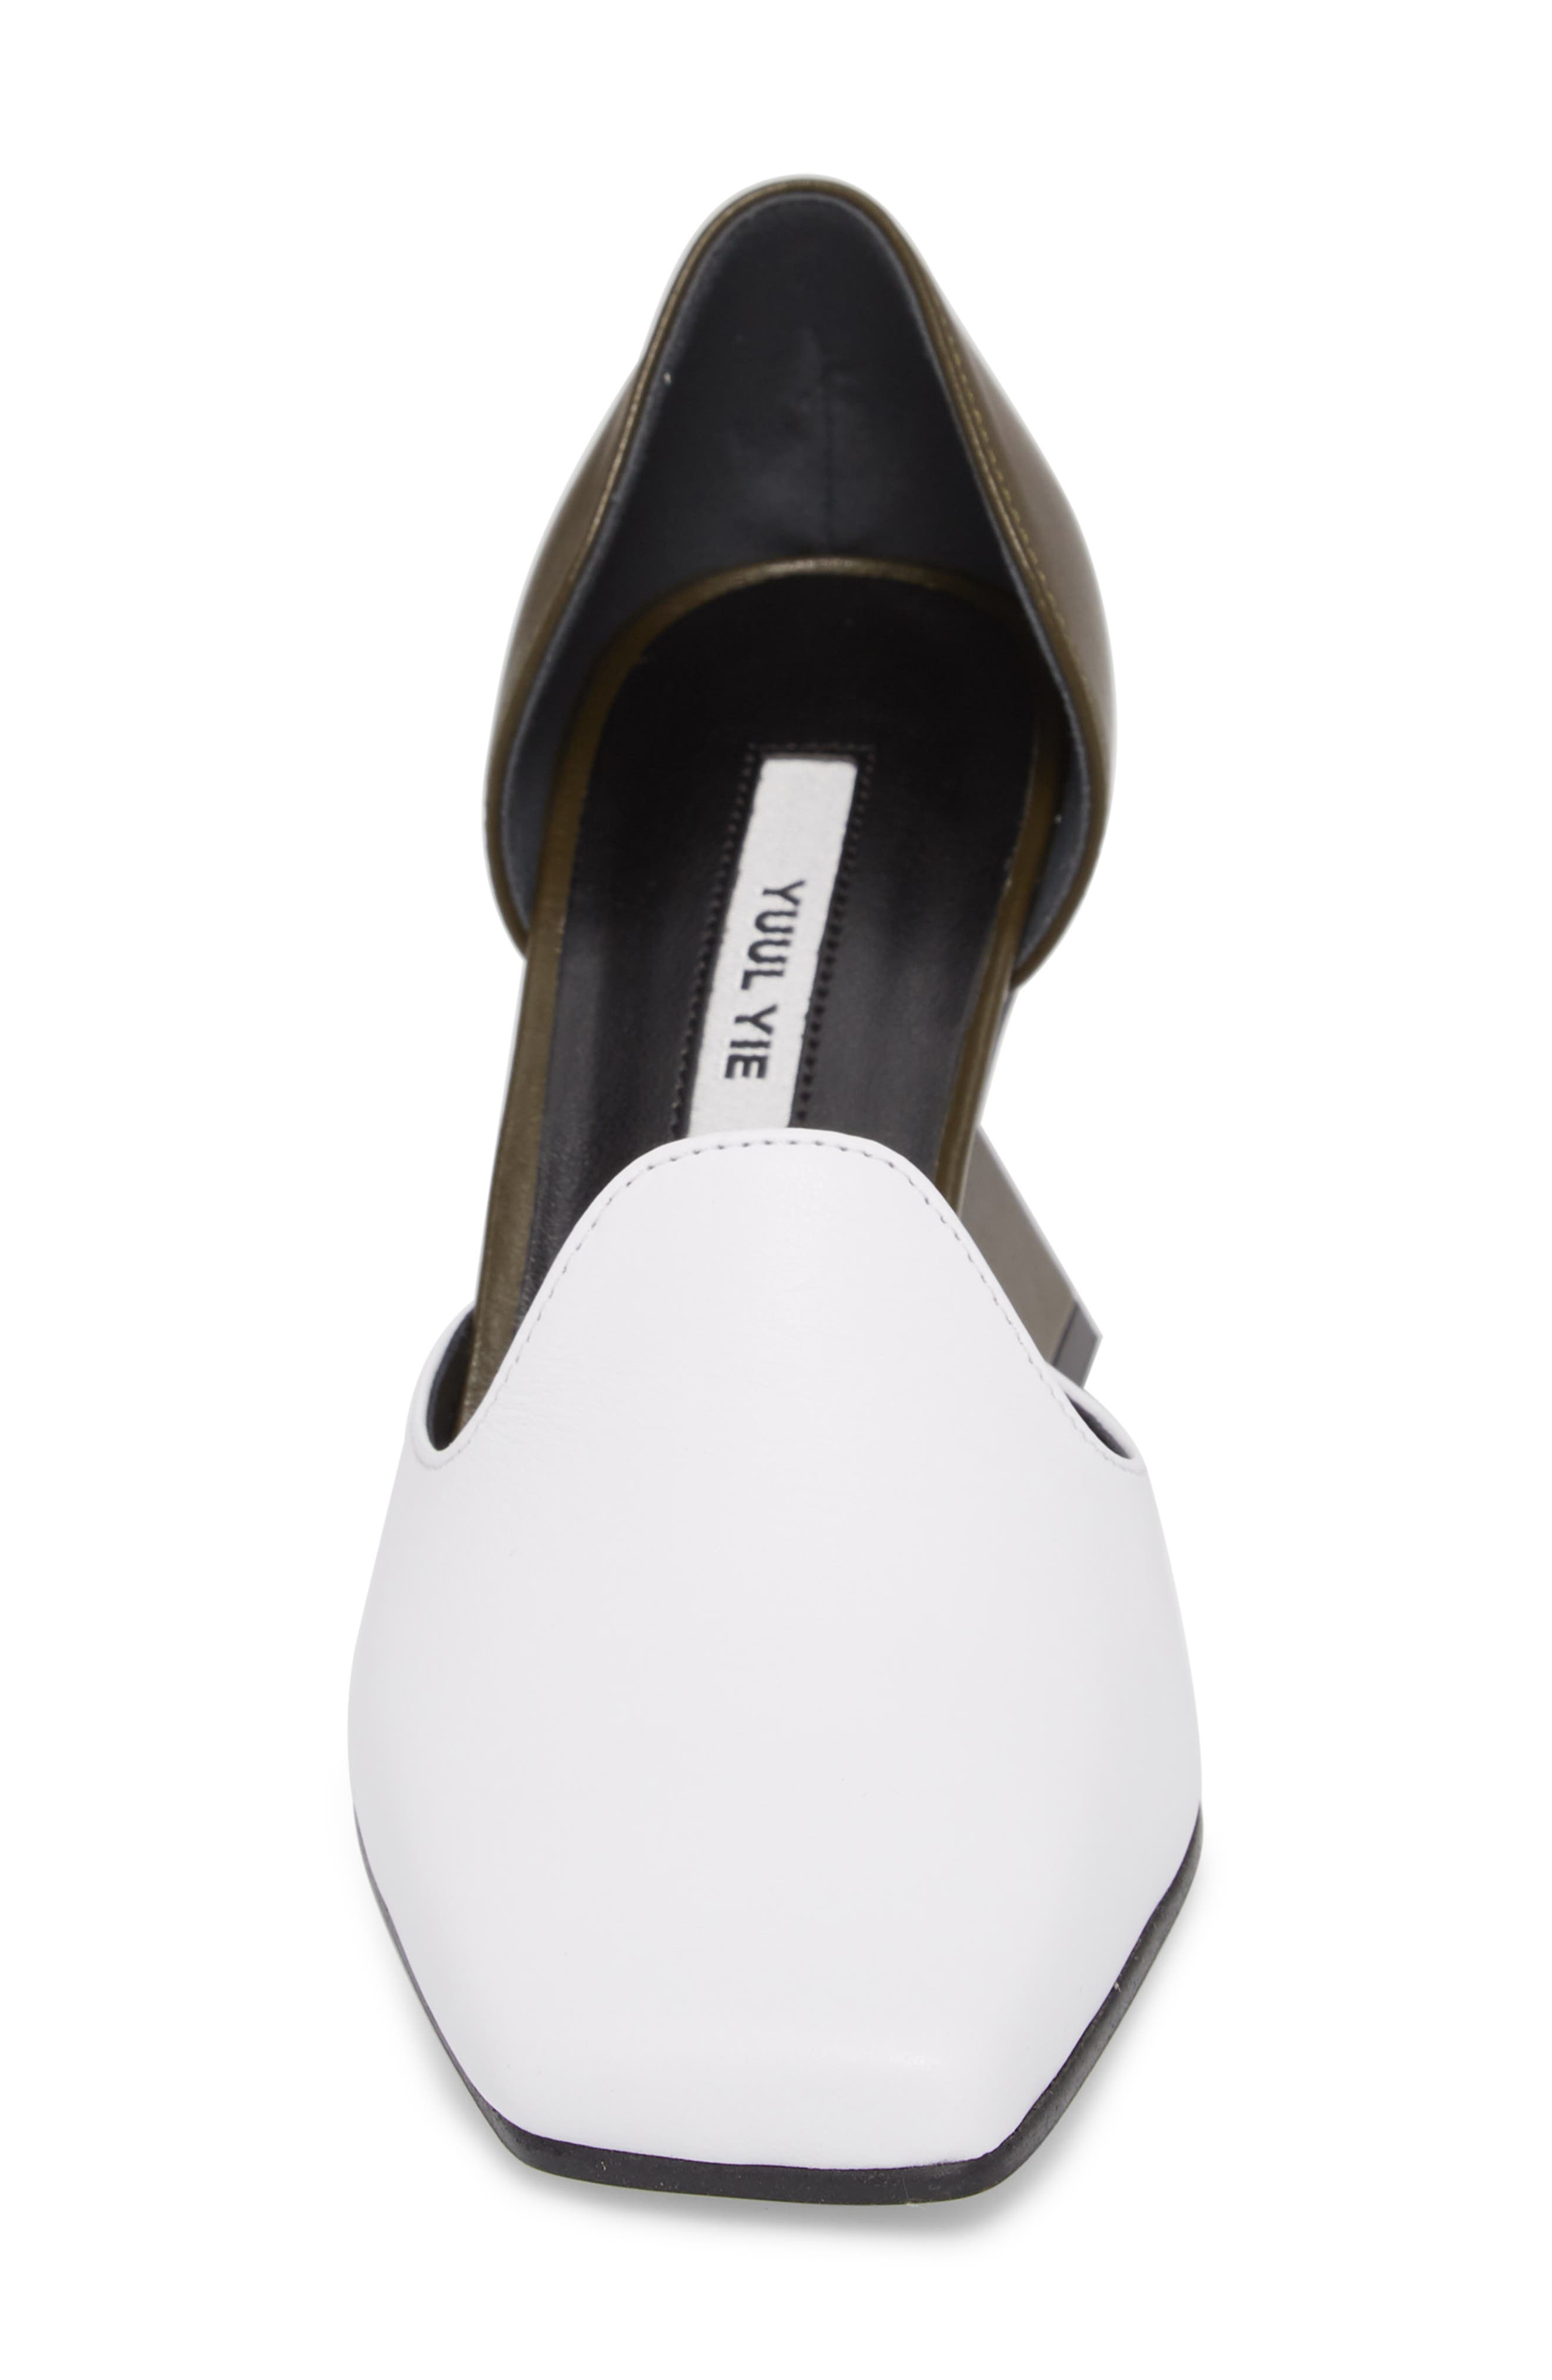 Statement Heel d'Orsay Pump,                             Alternate thumbnail 4, color,                             White/ Olive Green